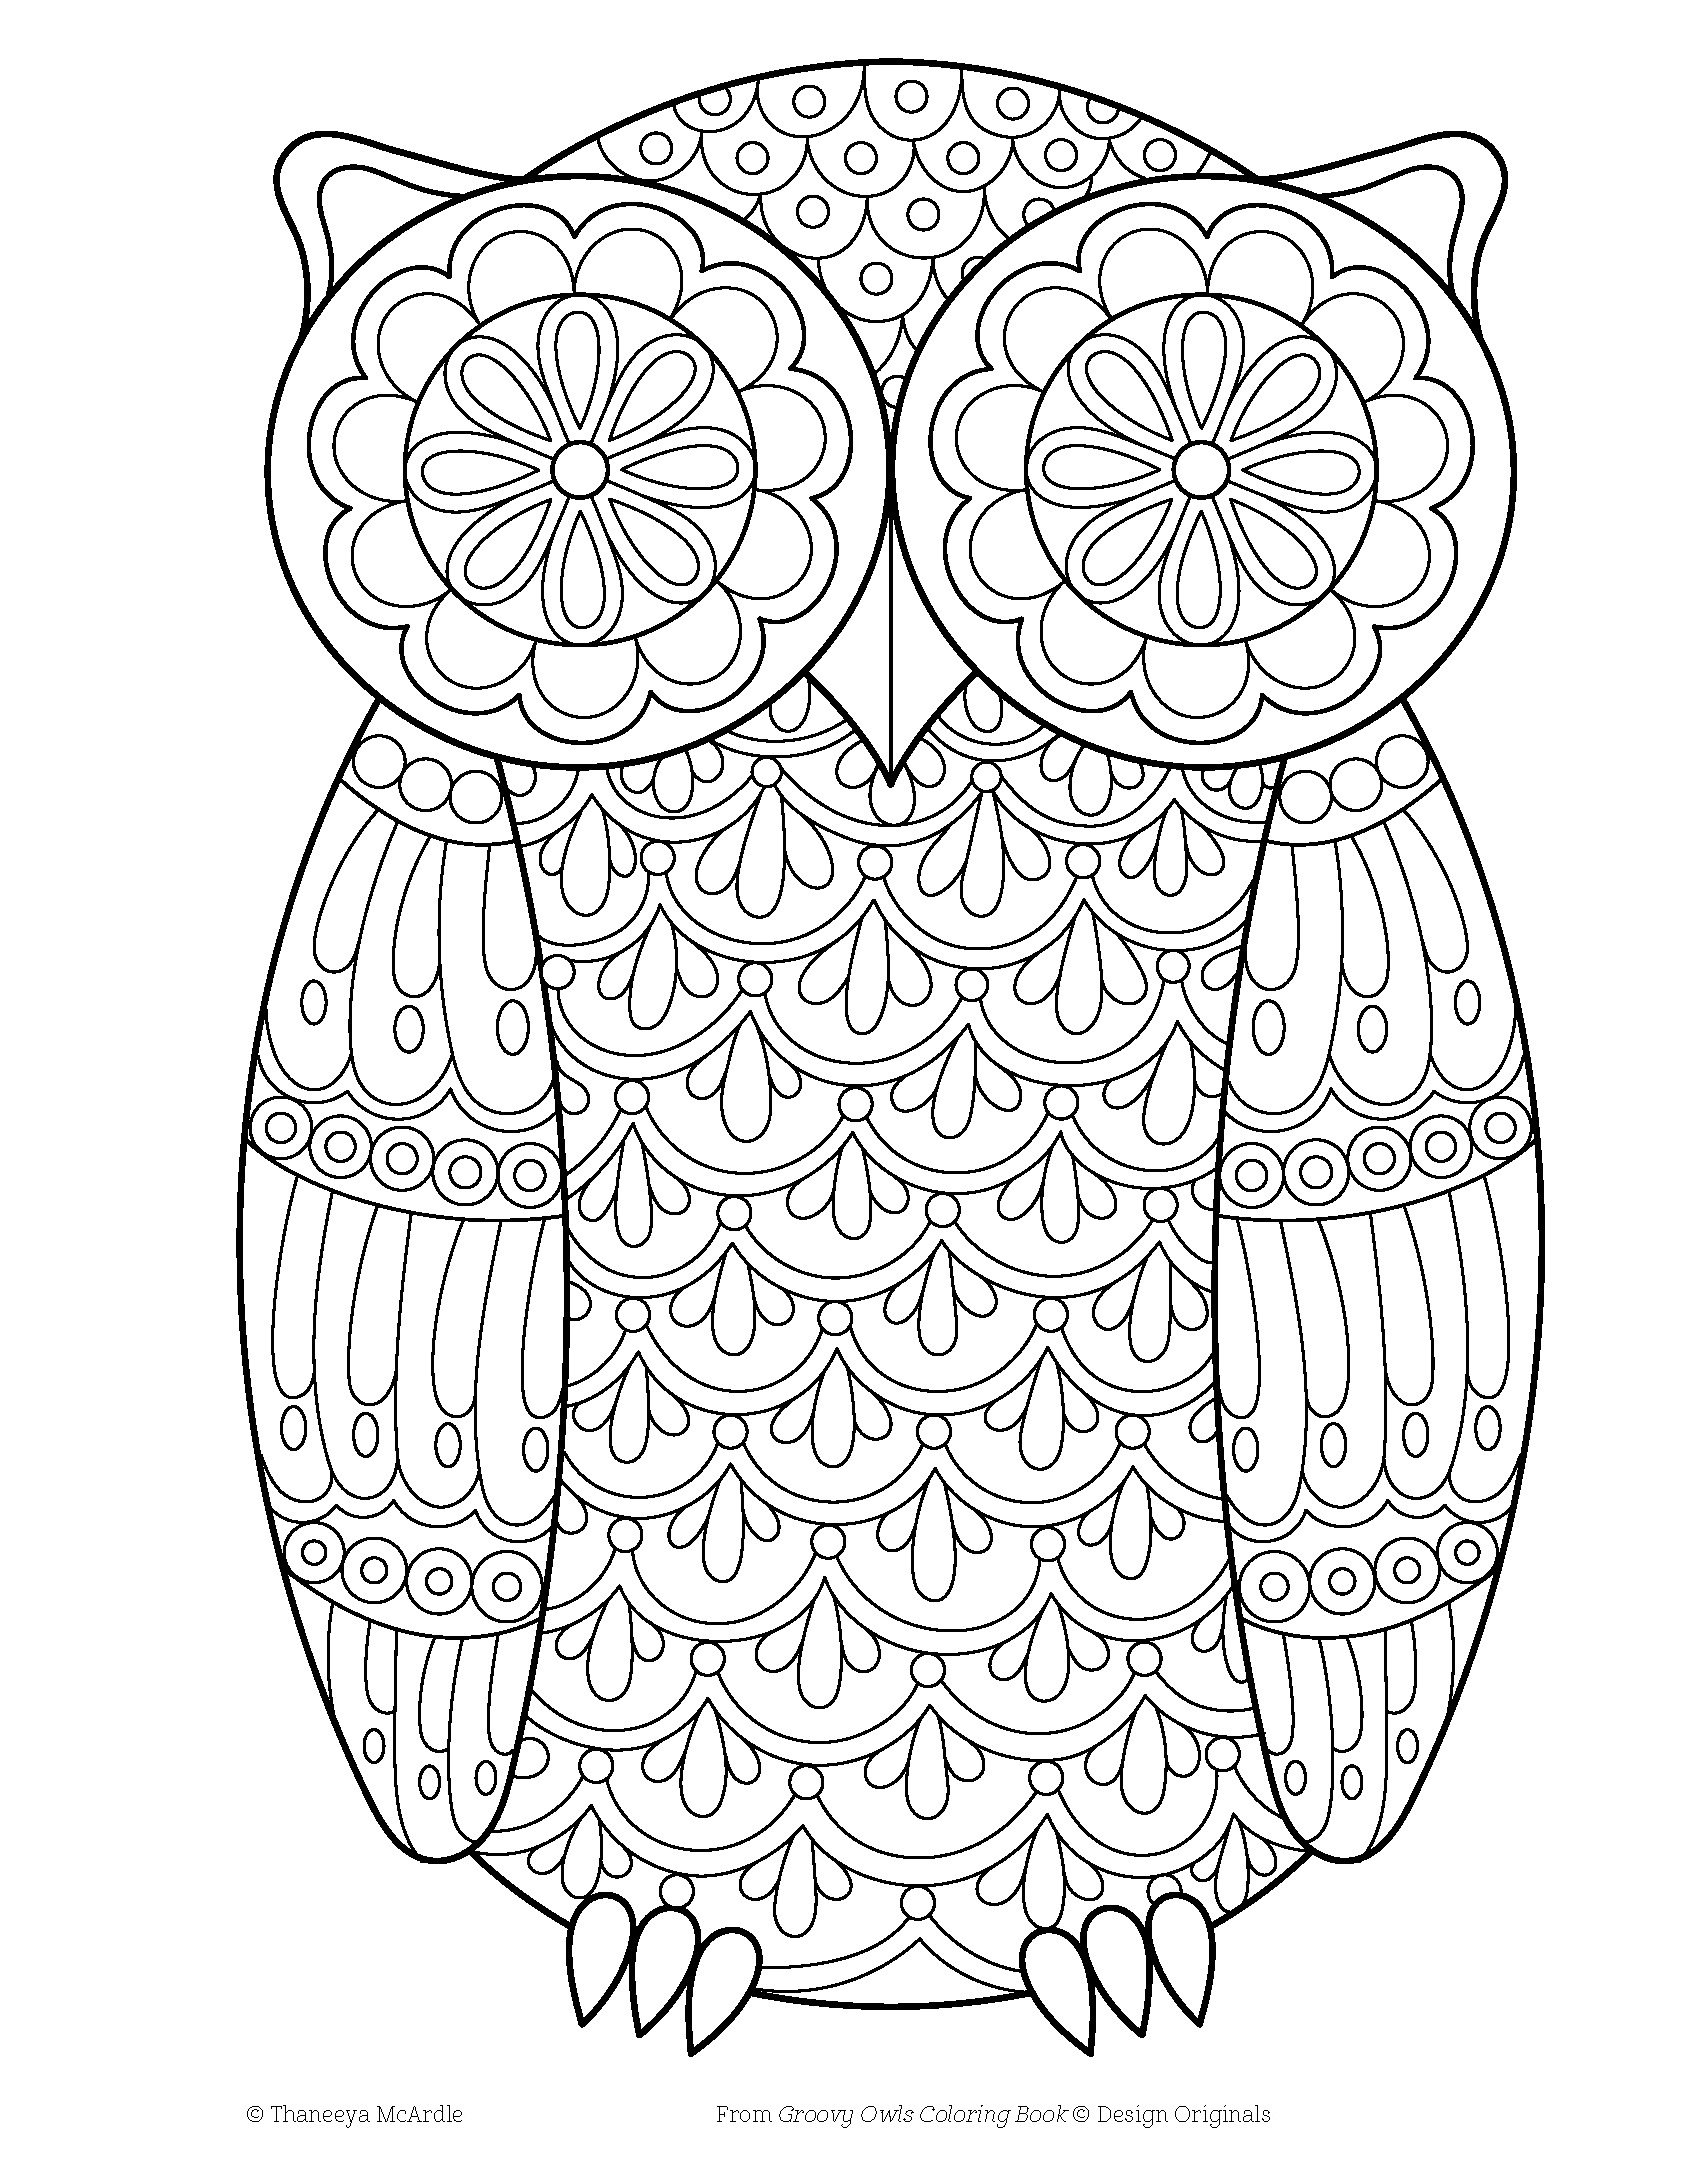 Amazon Groovy Owls Coloring Book Coloring Is Fun Design